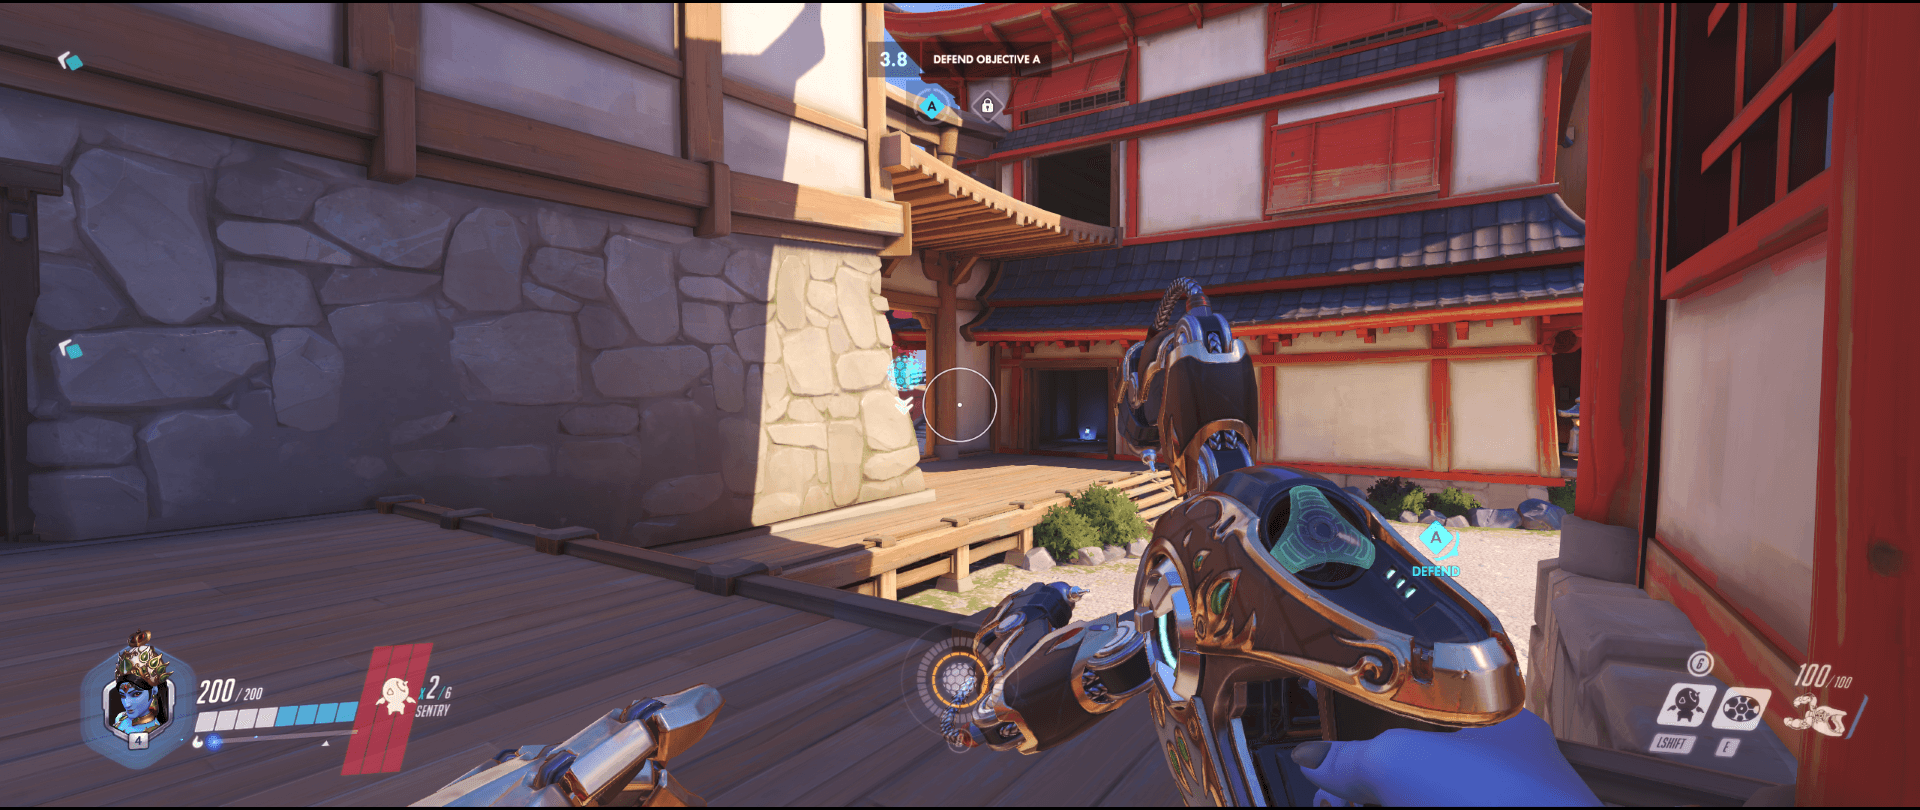 Symmetra Shield Generator spot Hanamura behind bridge range 2 point one.png